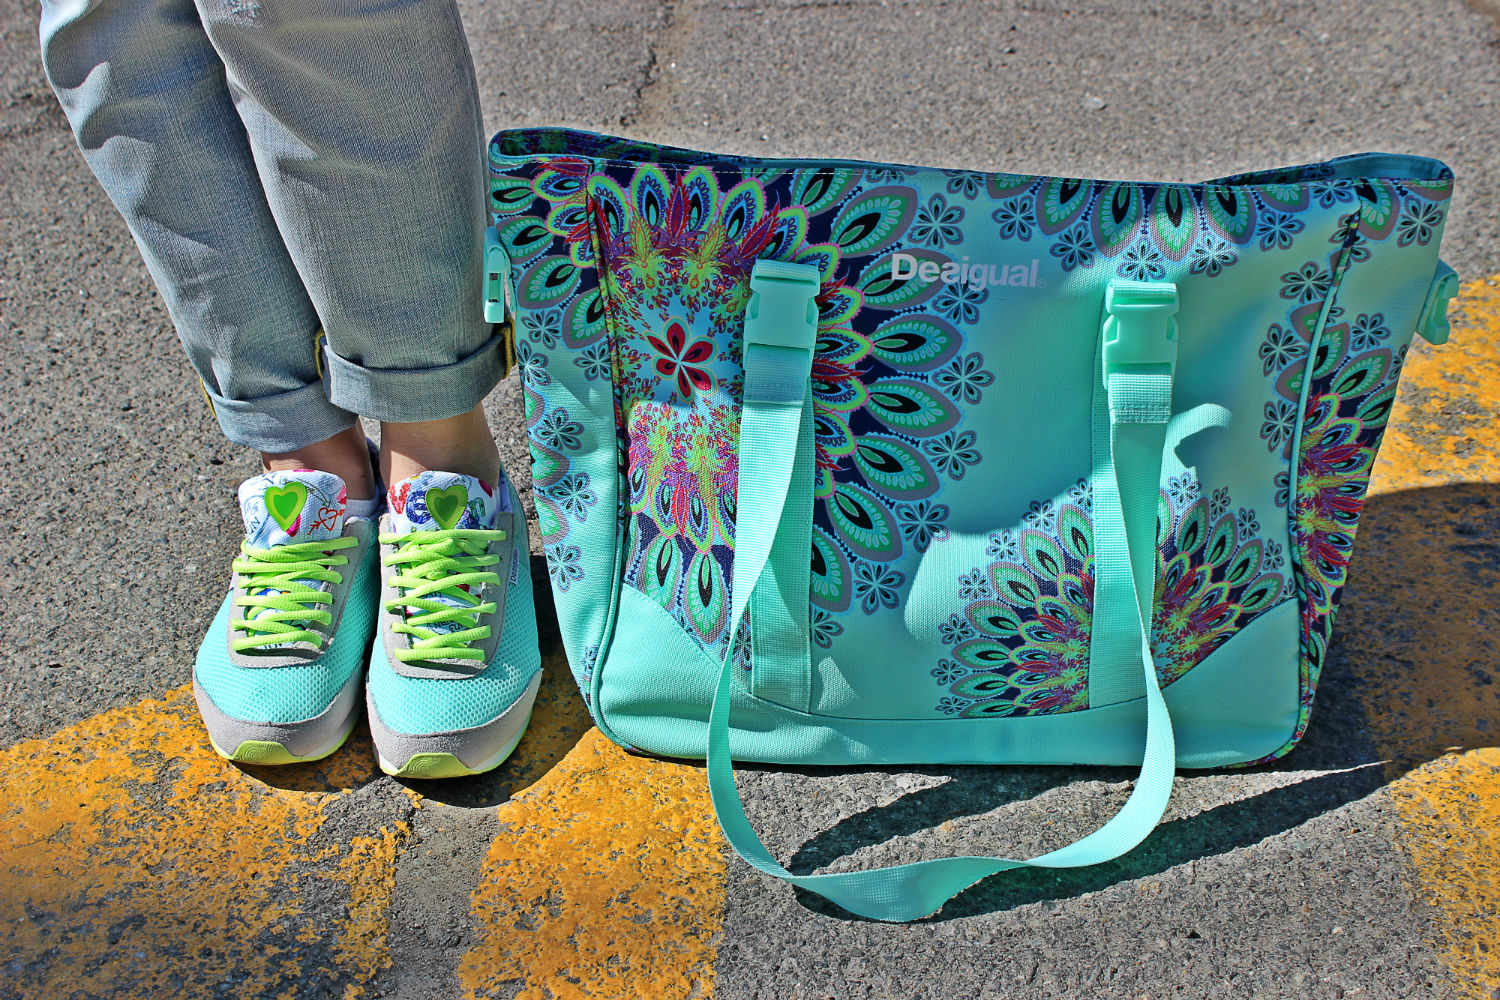 desigual-sneakers-bag-total-look-outfit-elisabettabertolini-fashion10